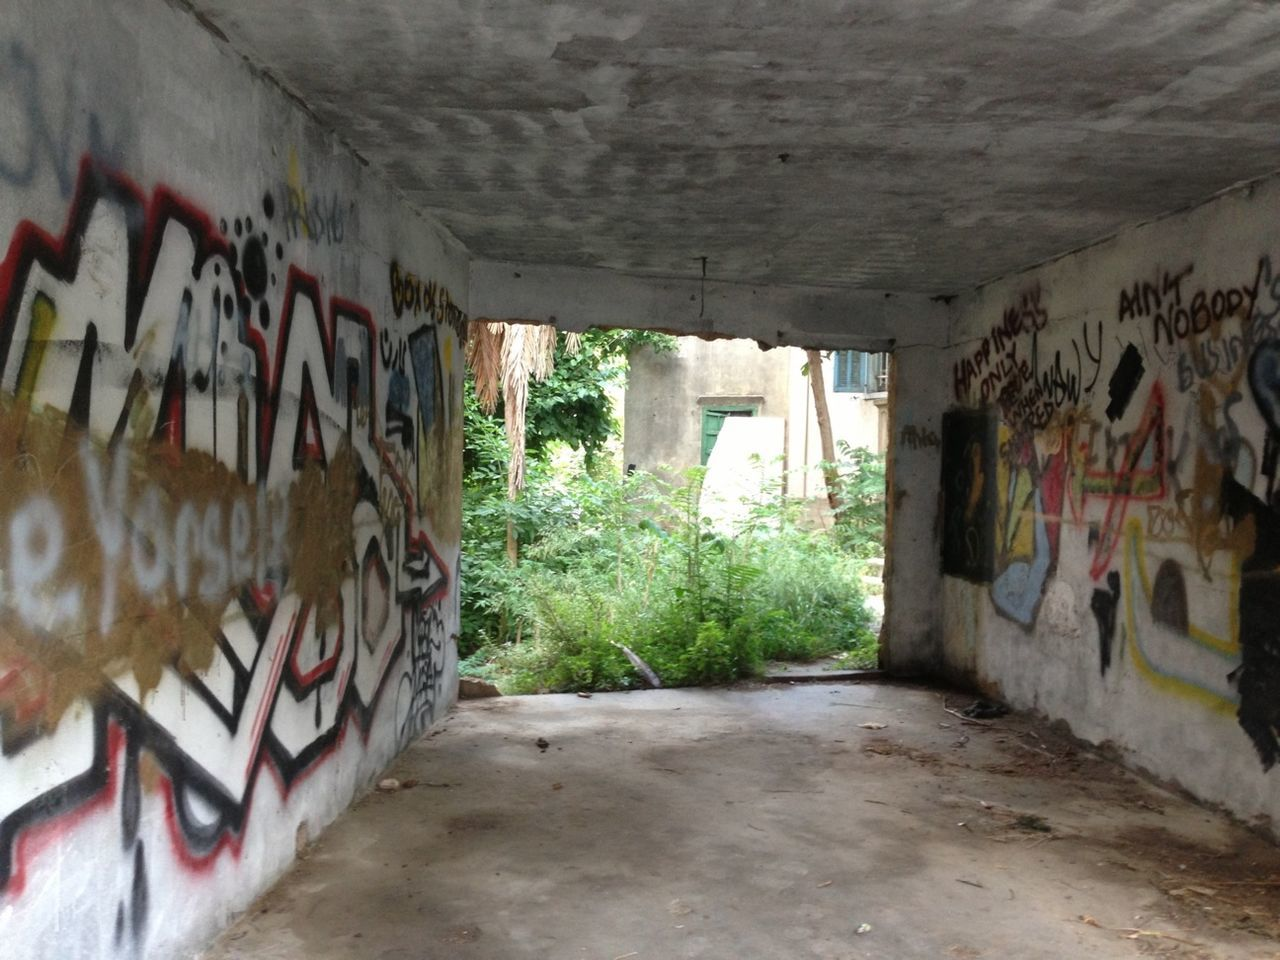 graffiti, architecture, built structure, abandoned, no people, day, indoors, building exterior, desolate